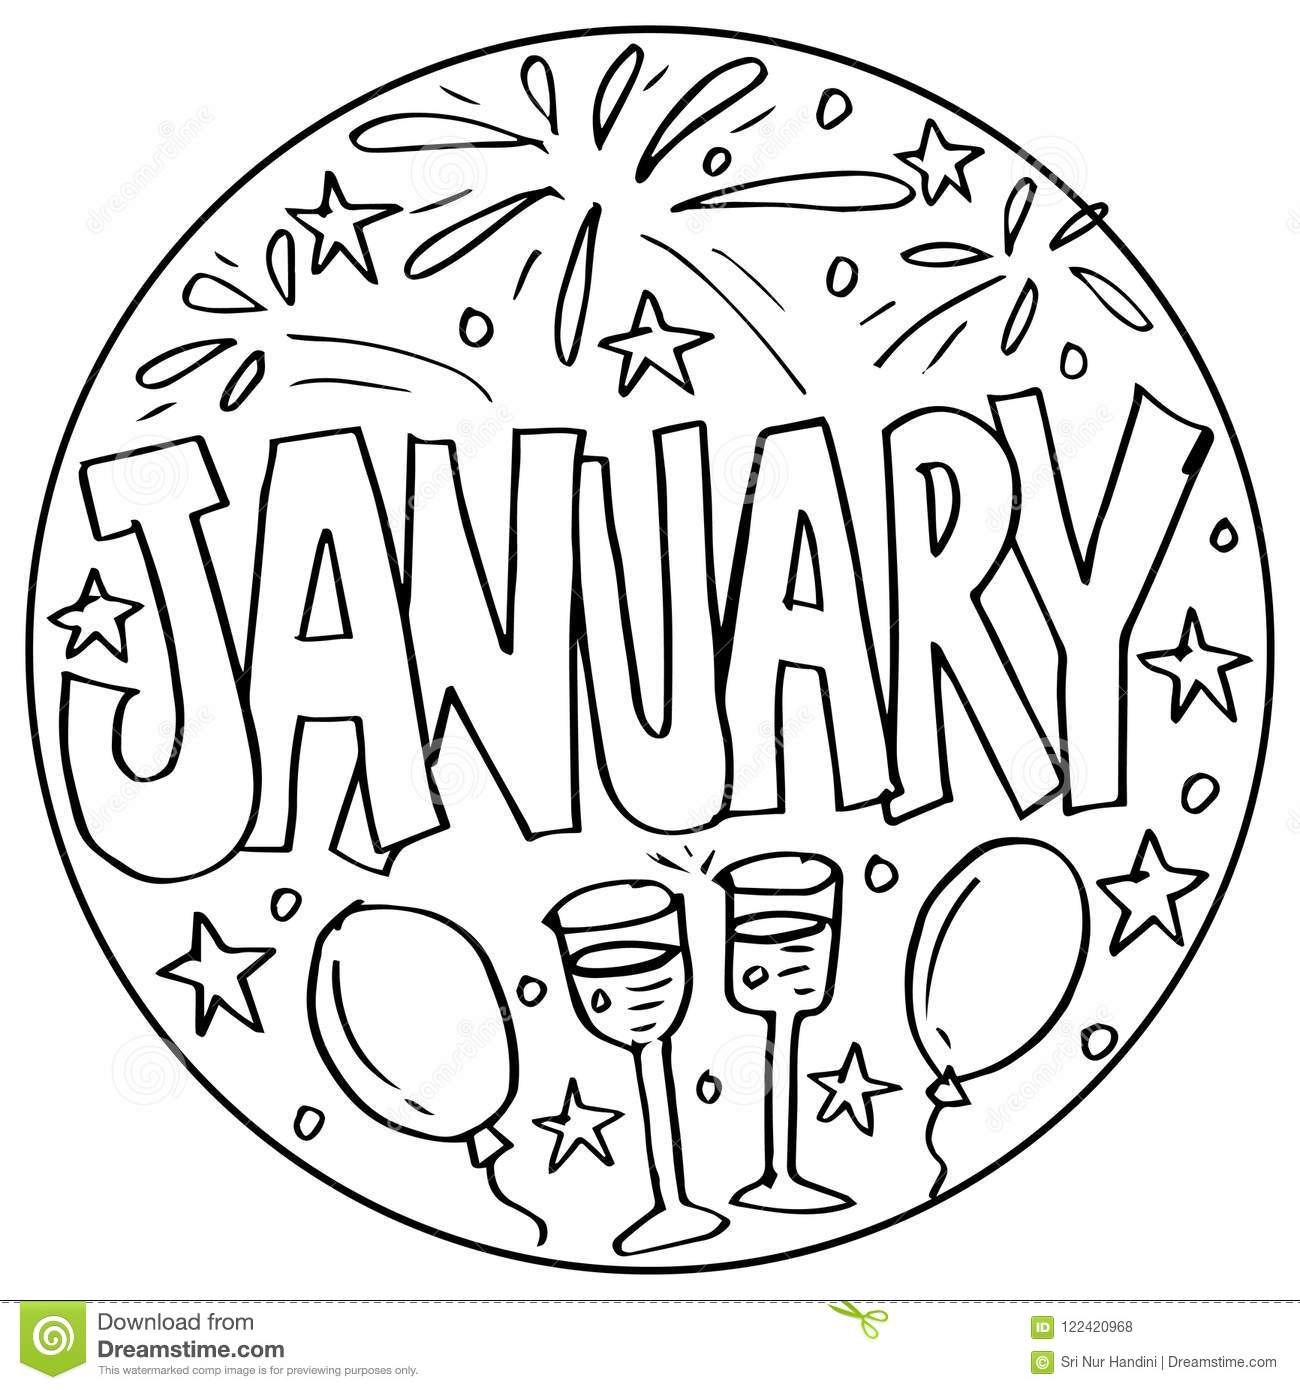 Coloring pages - Months | Stock Photo and Image Collection by ... | 1390x1300